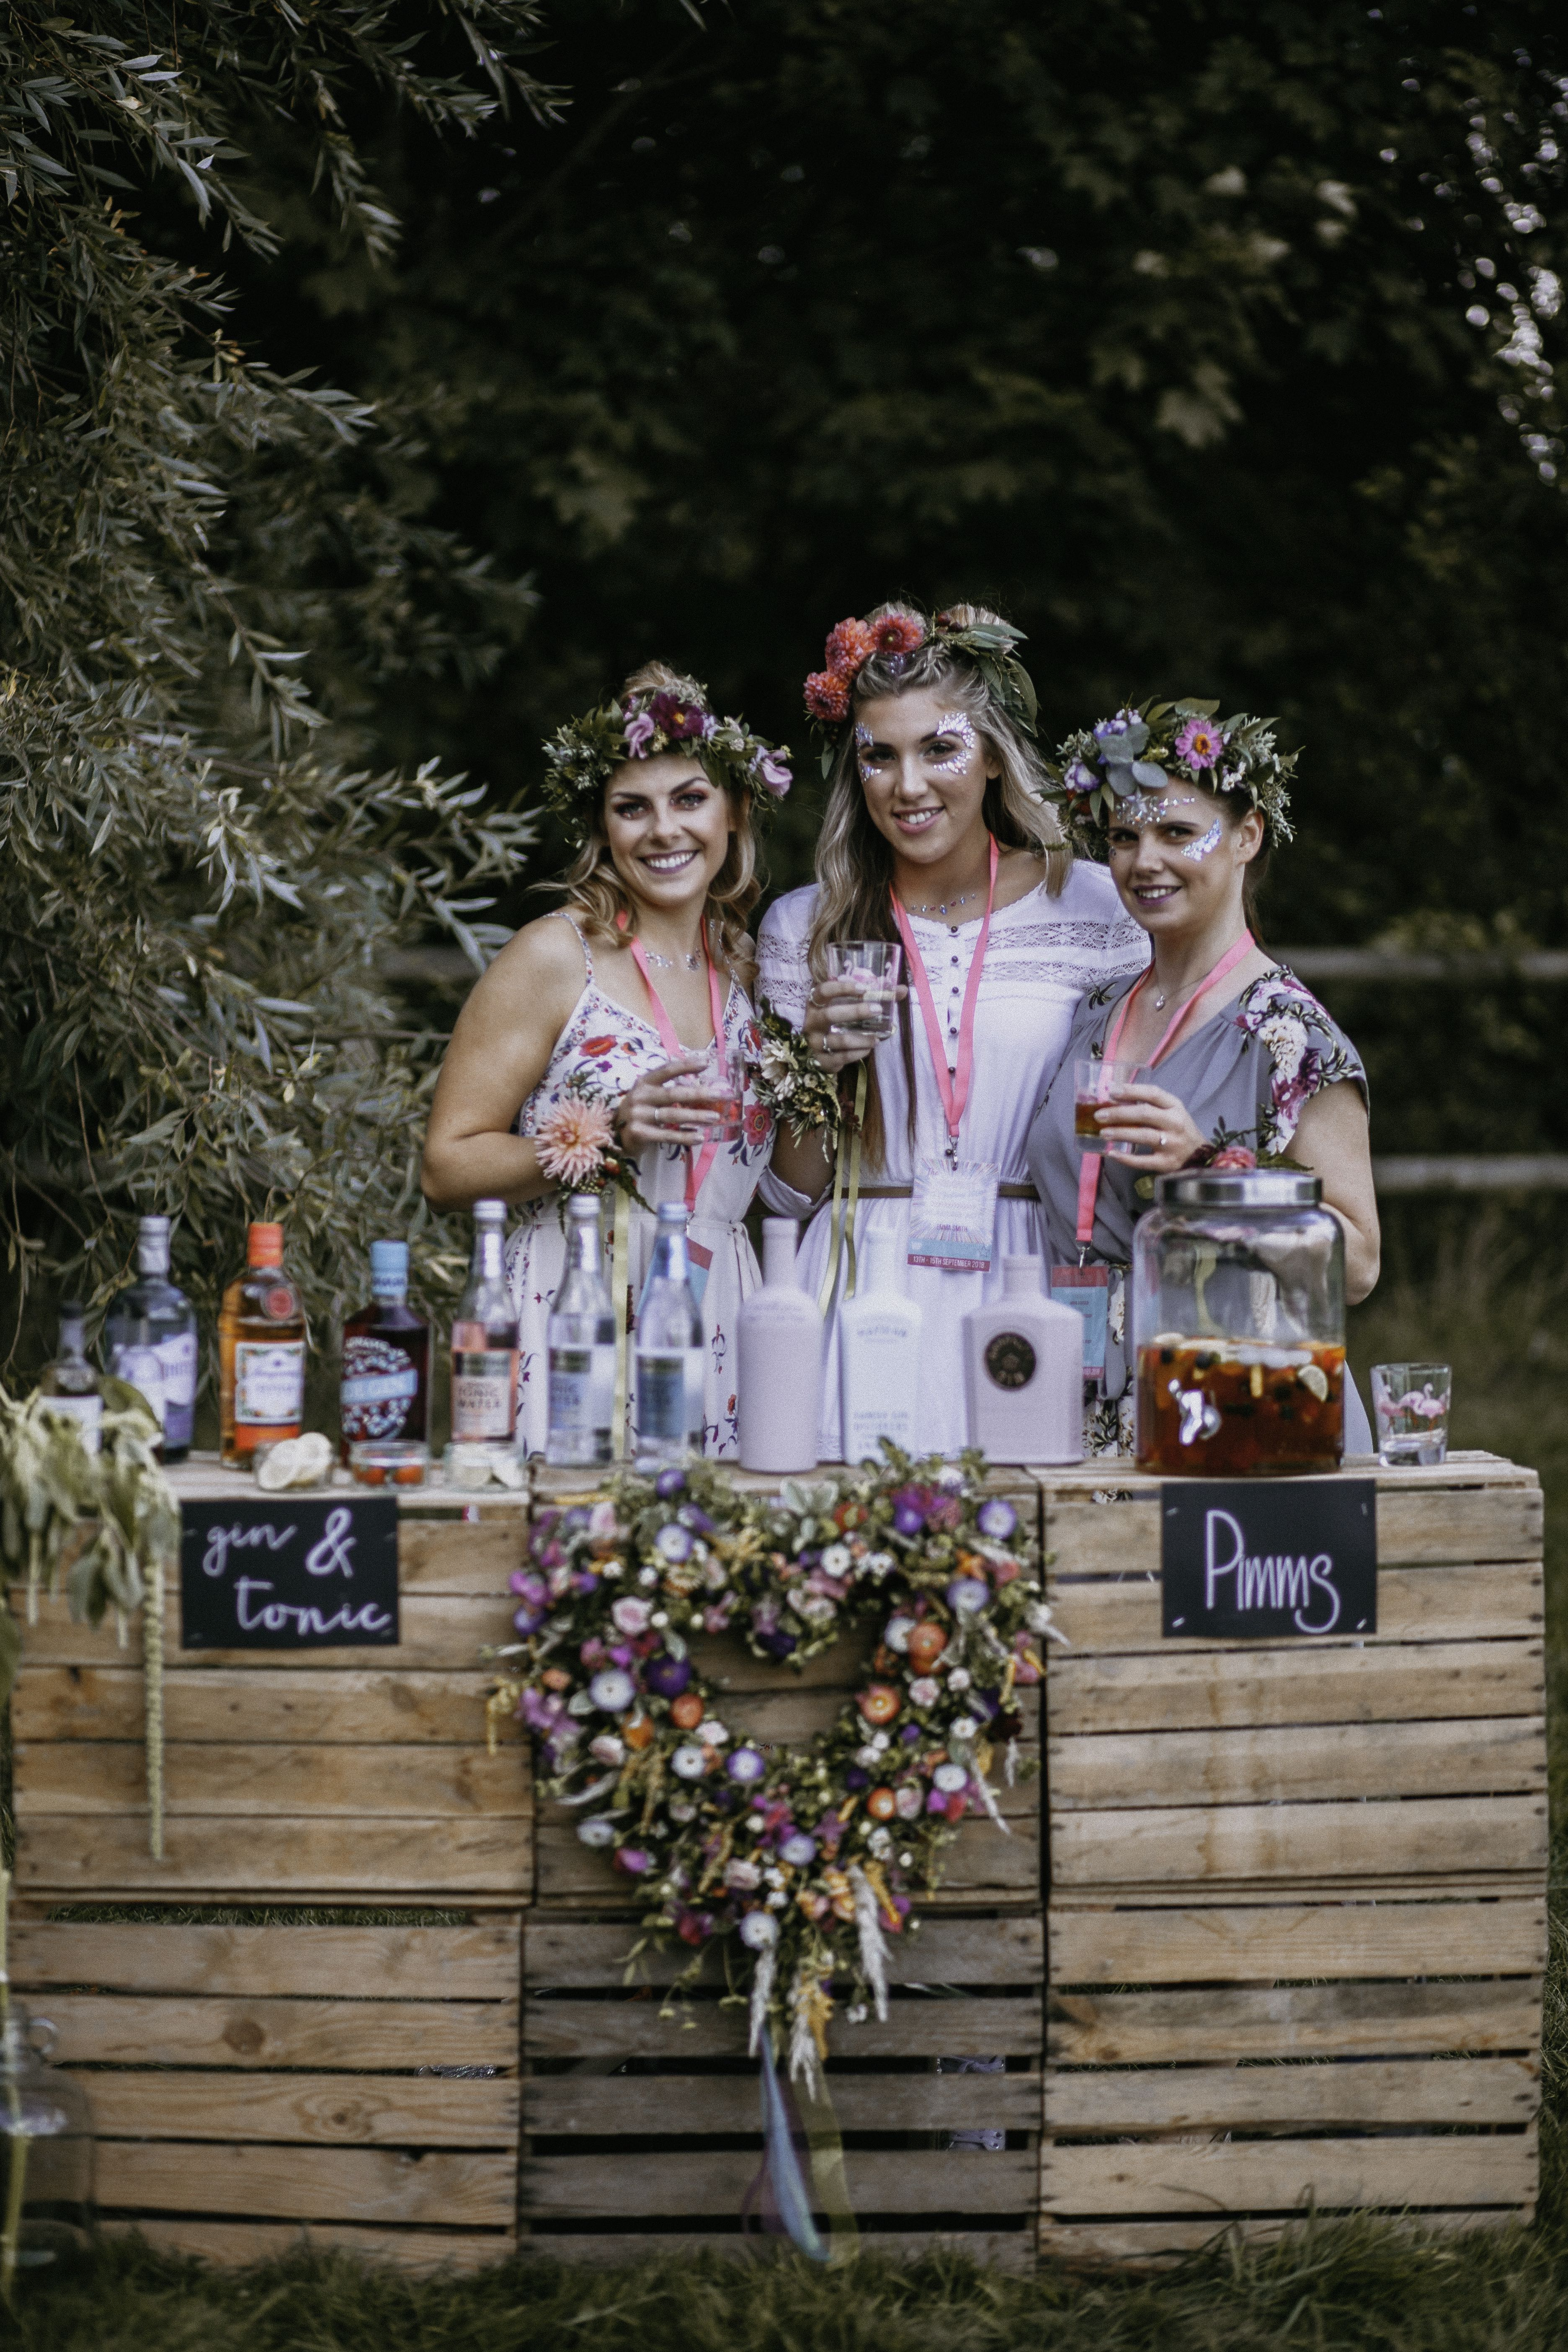 Host the perfect hen party for a festival loving bride to be including HENFEST lanyards and invites, personalised hen party bags, on trend festival outfits, beautiful festival decor and glitter everywhere! Perfectly styled by www.pitch-boutique.co.uk